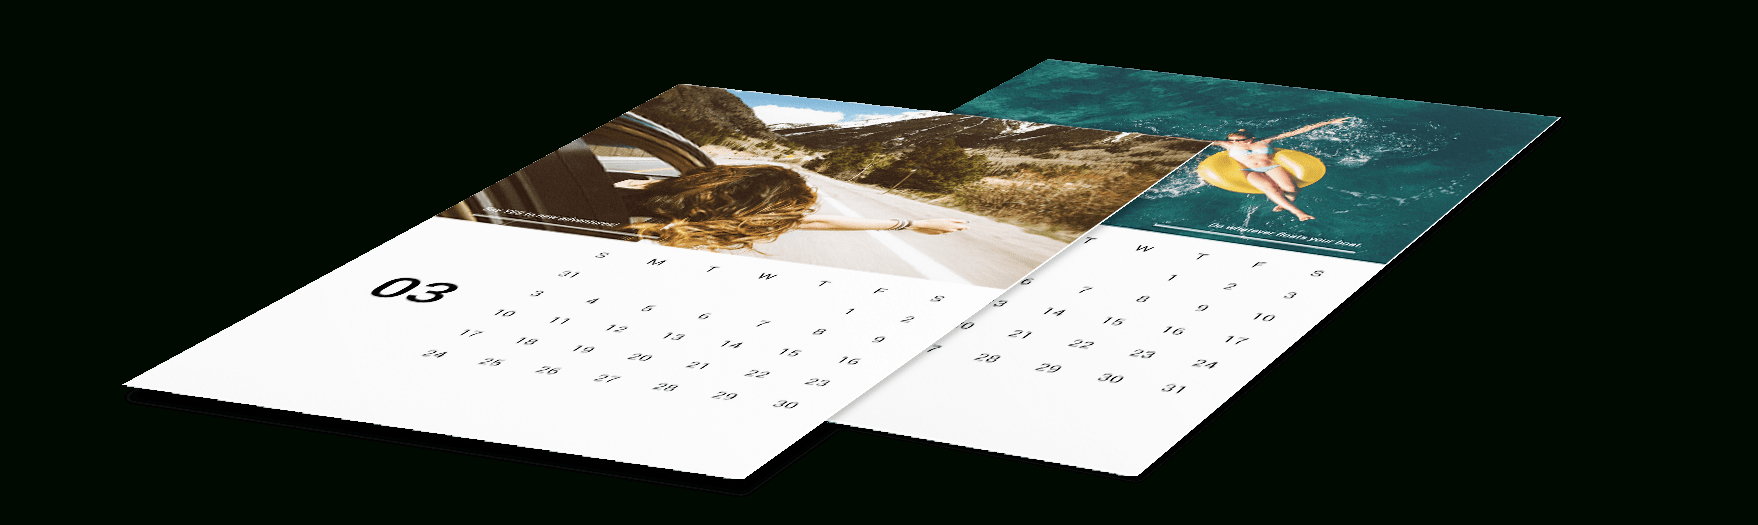 Custom Photo Calendars Philippines | Make Your Own @40% Off pertaining to Calendar Printing Services Philippines